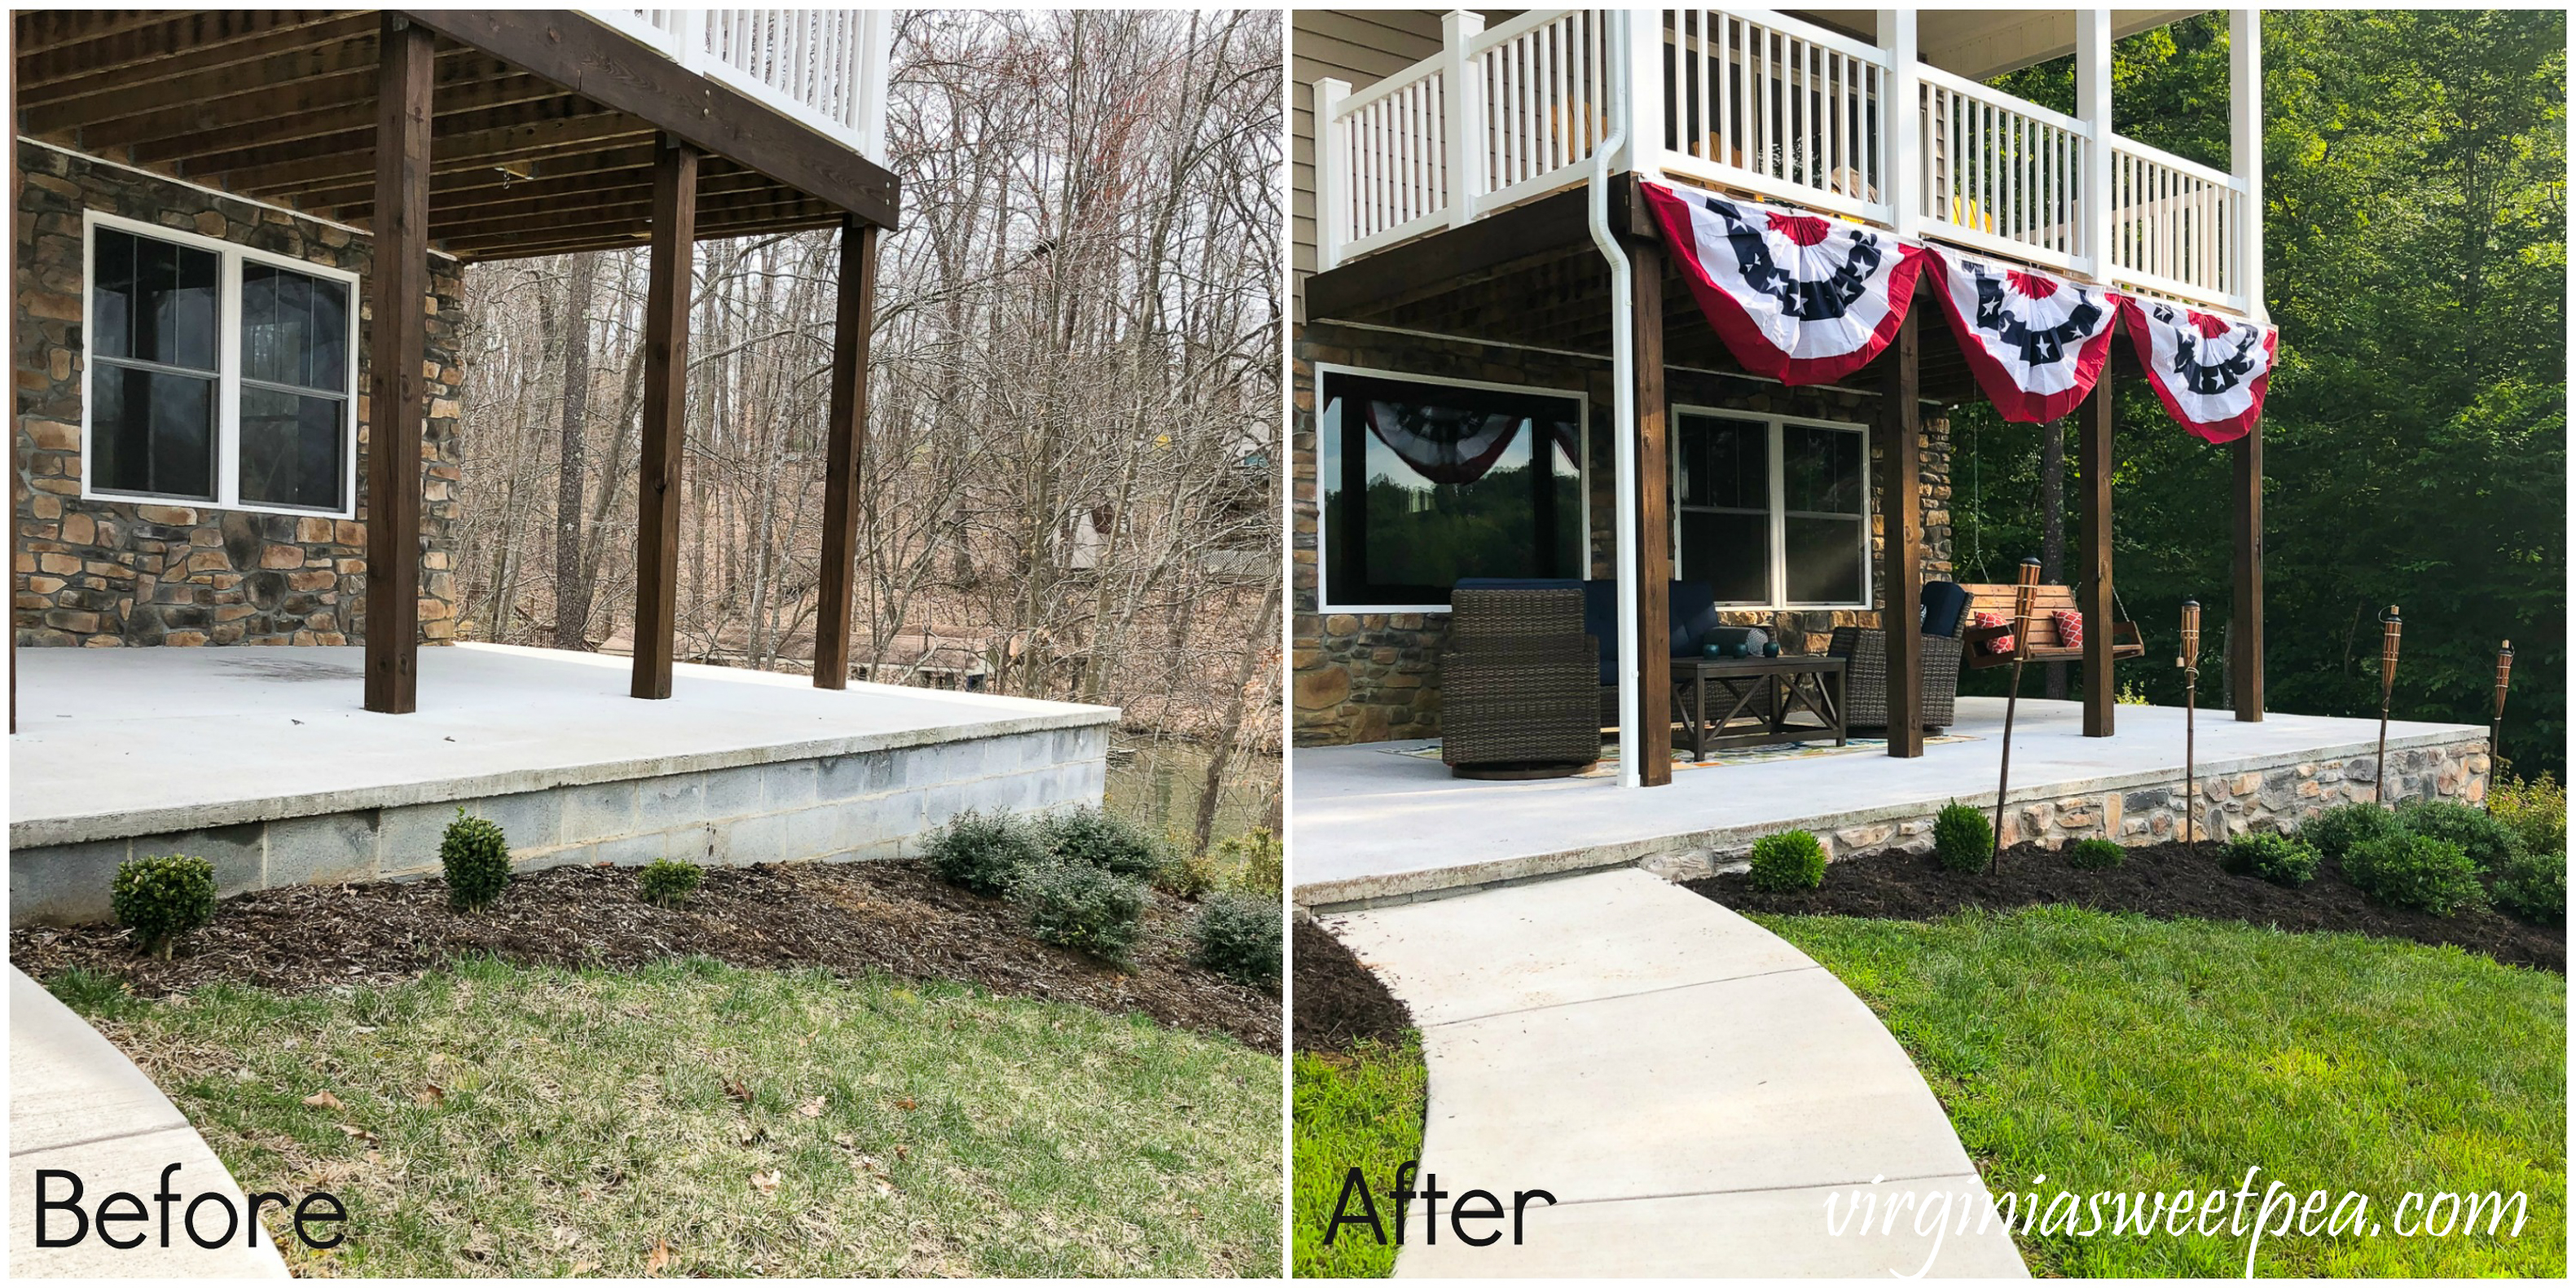 Before and After of a patio wall faced with stone veneer